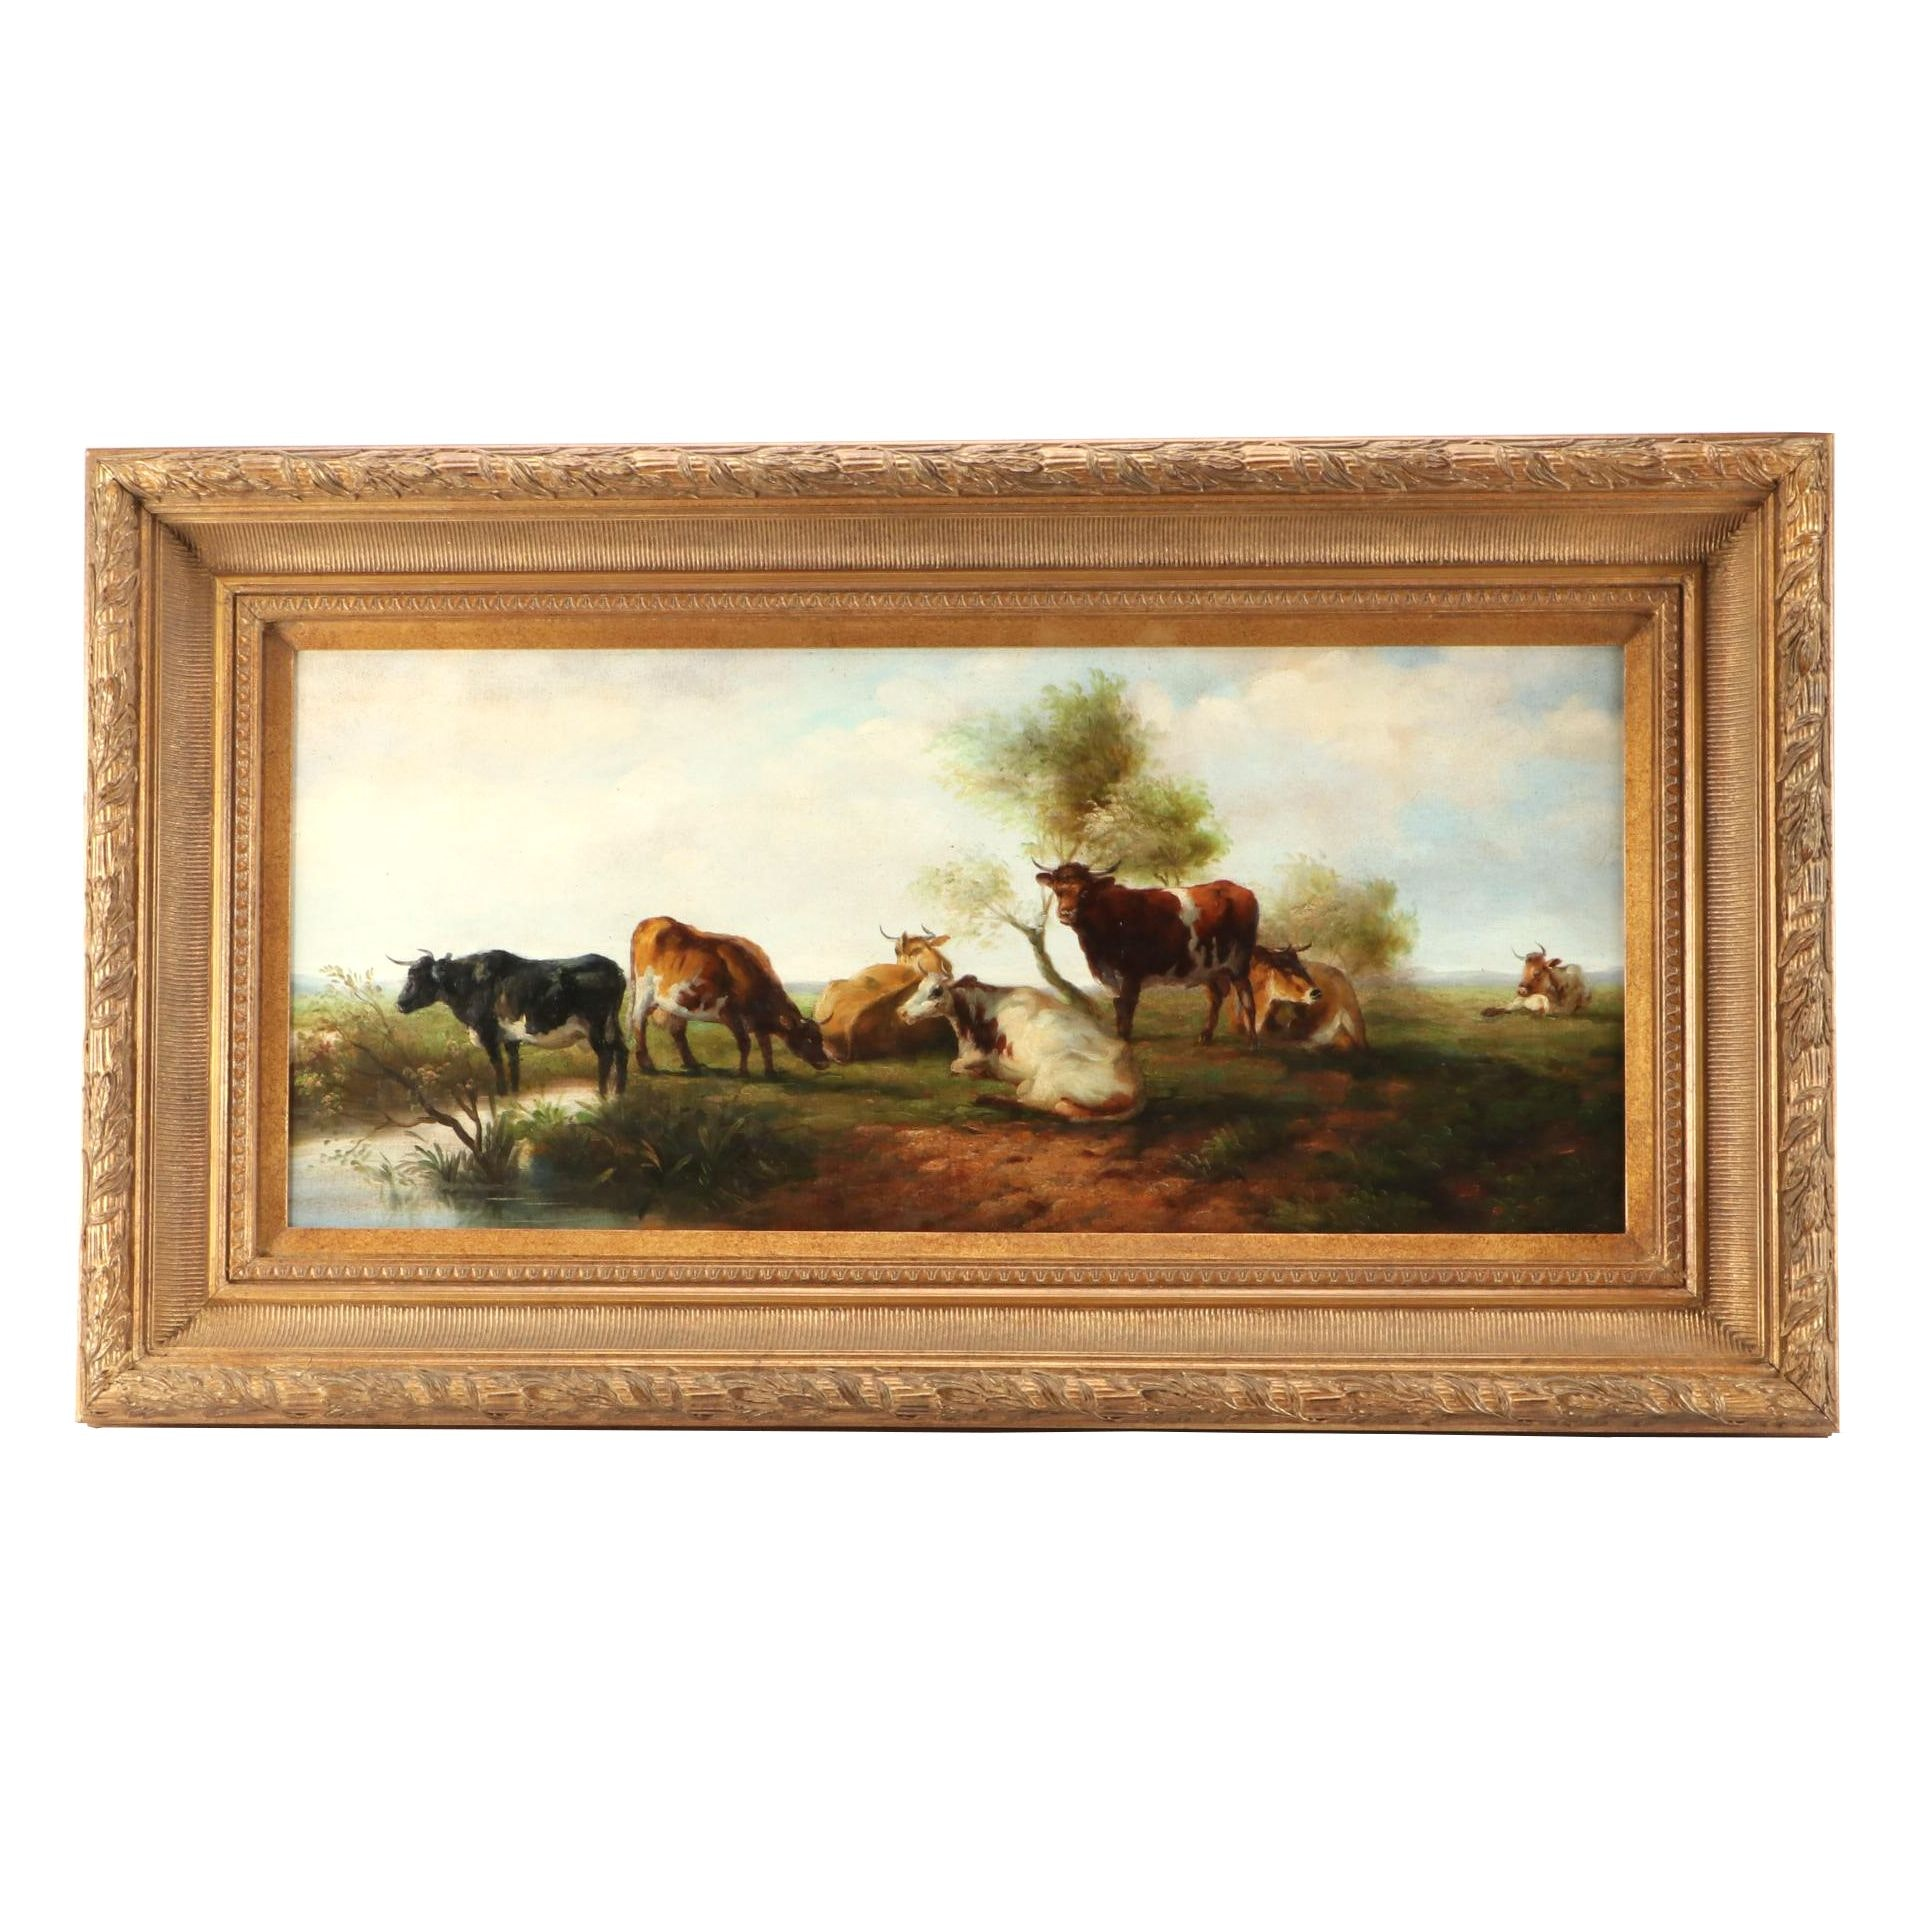 Contemporary Oil Painting of a Pastoral Landscape